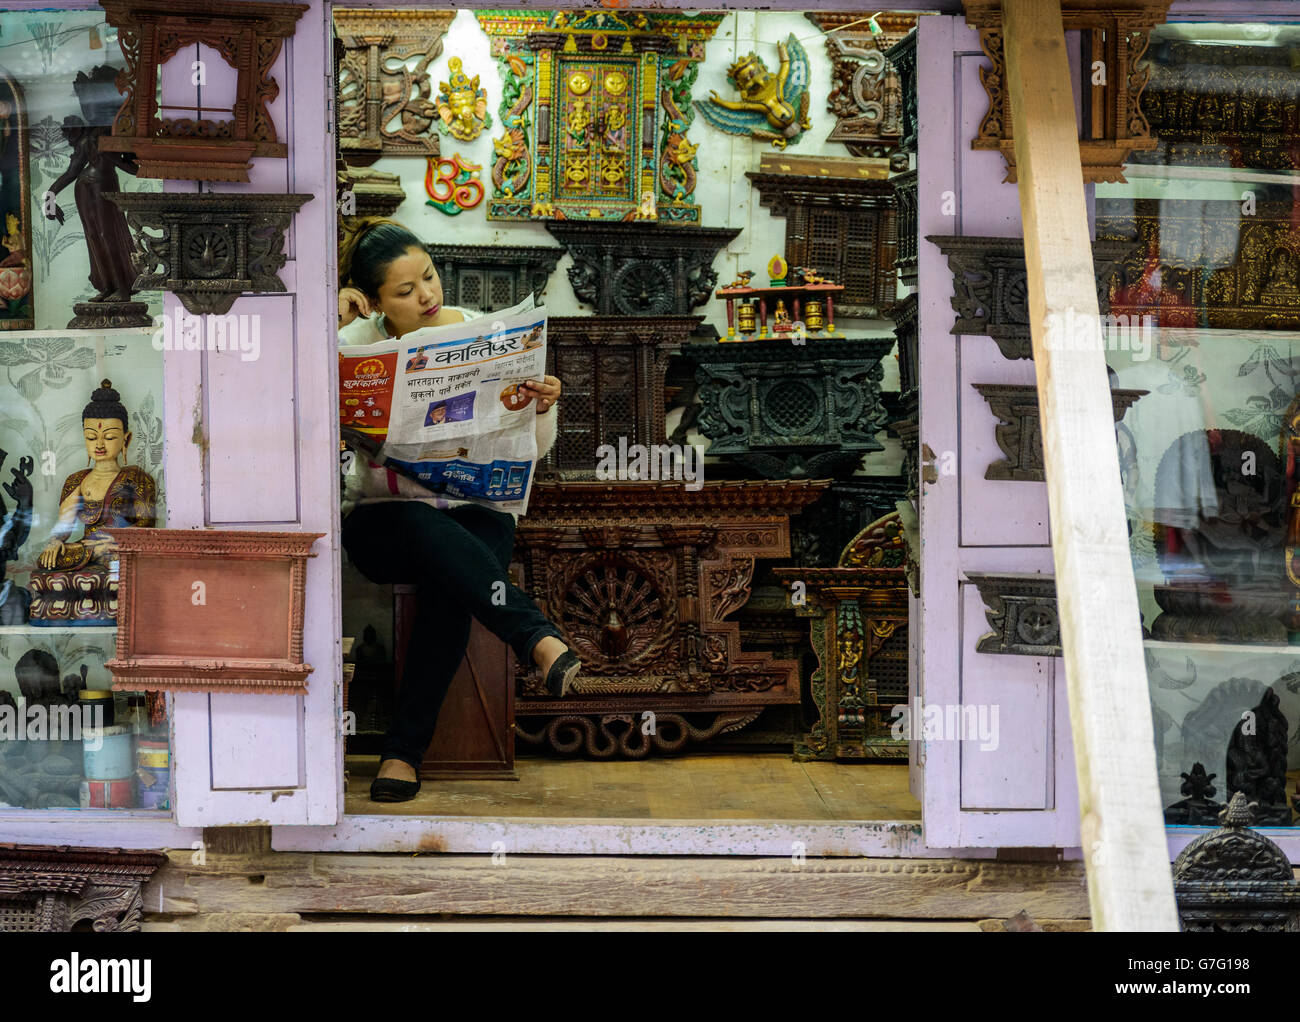 Shopkeeper reading a newspaper in Patan, Nepal - Stock Image